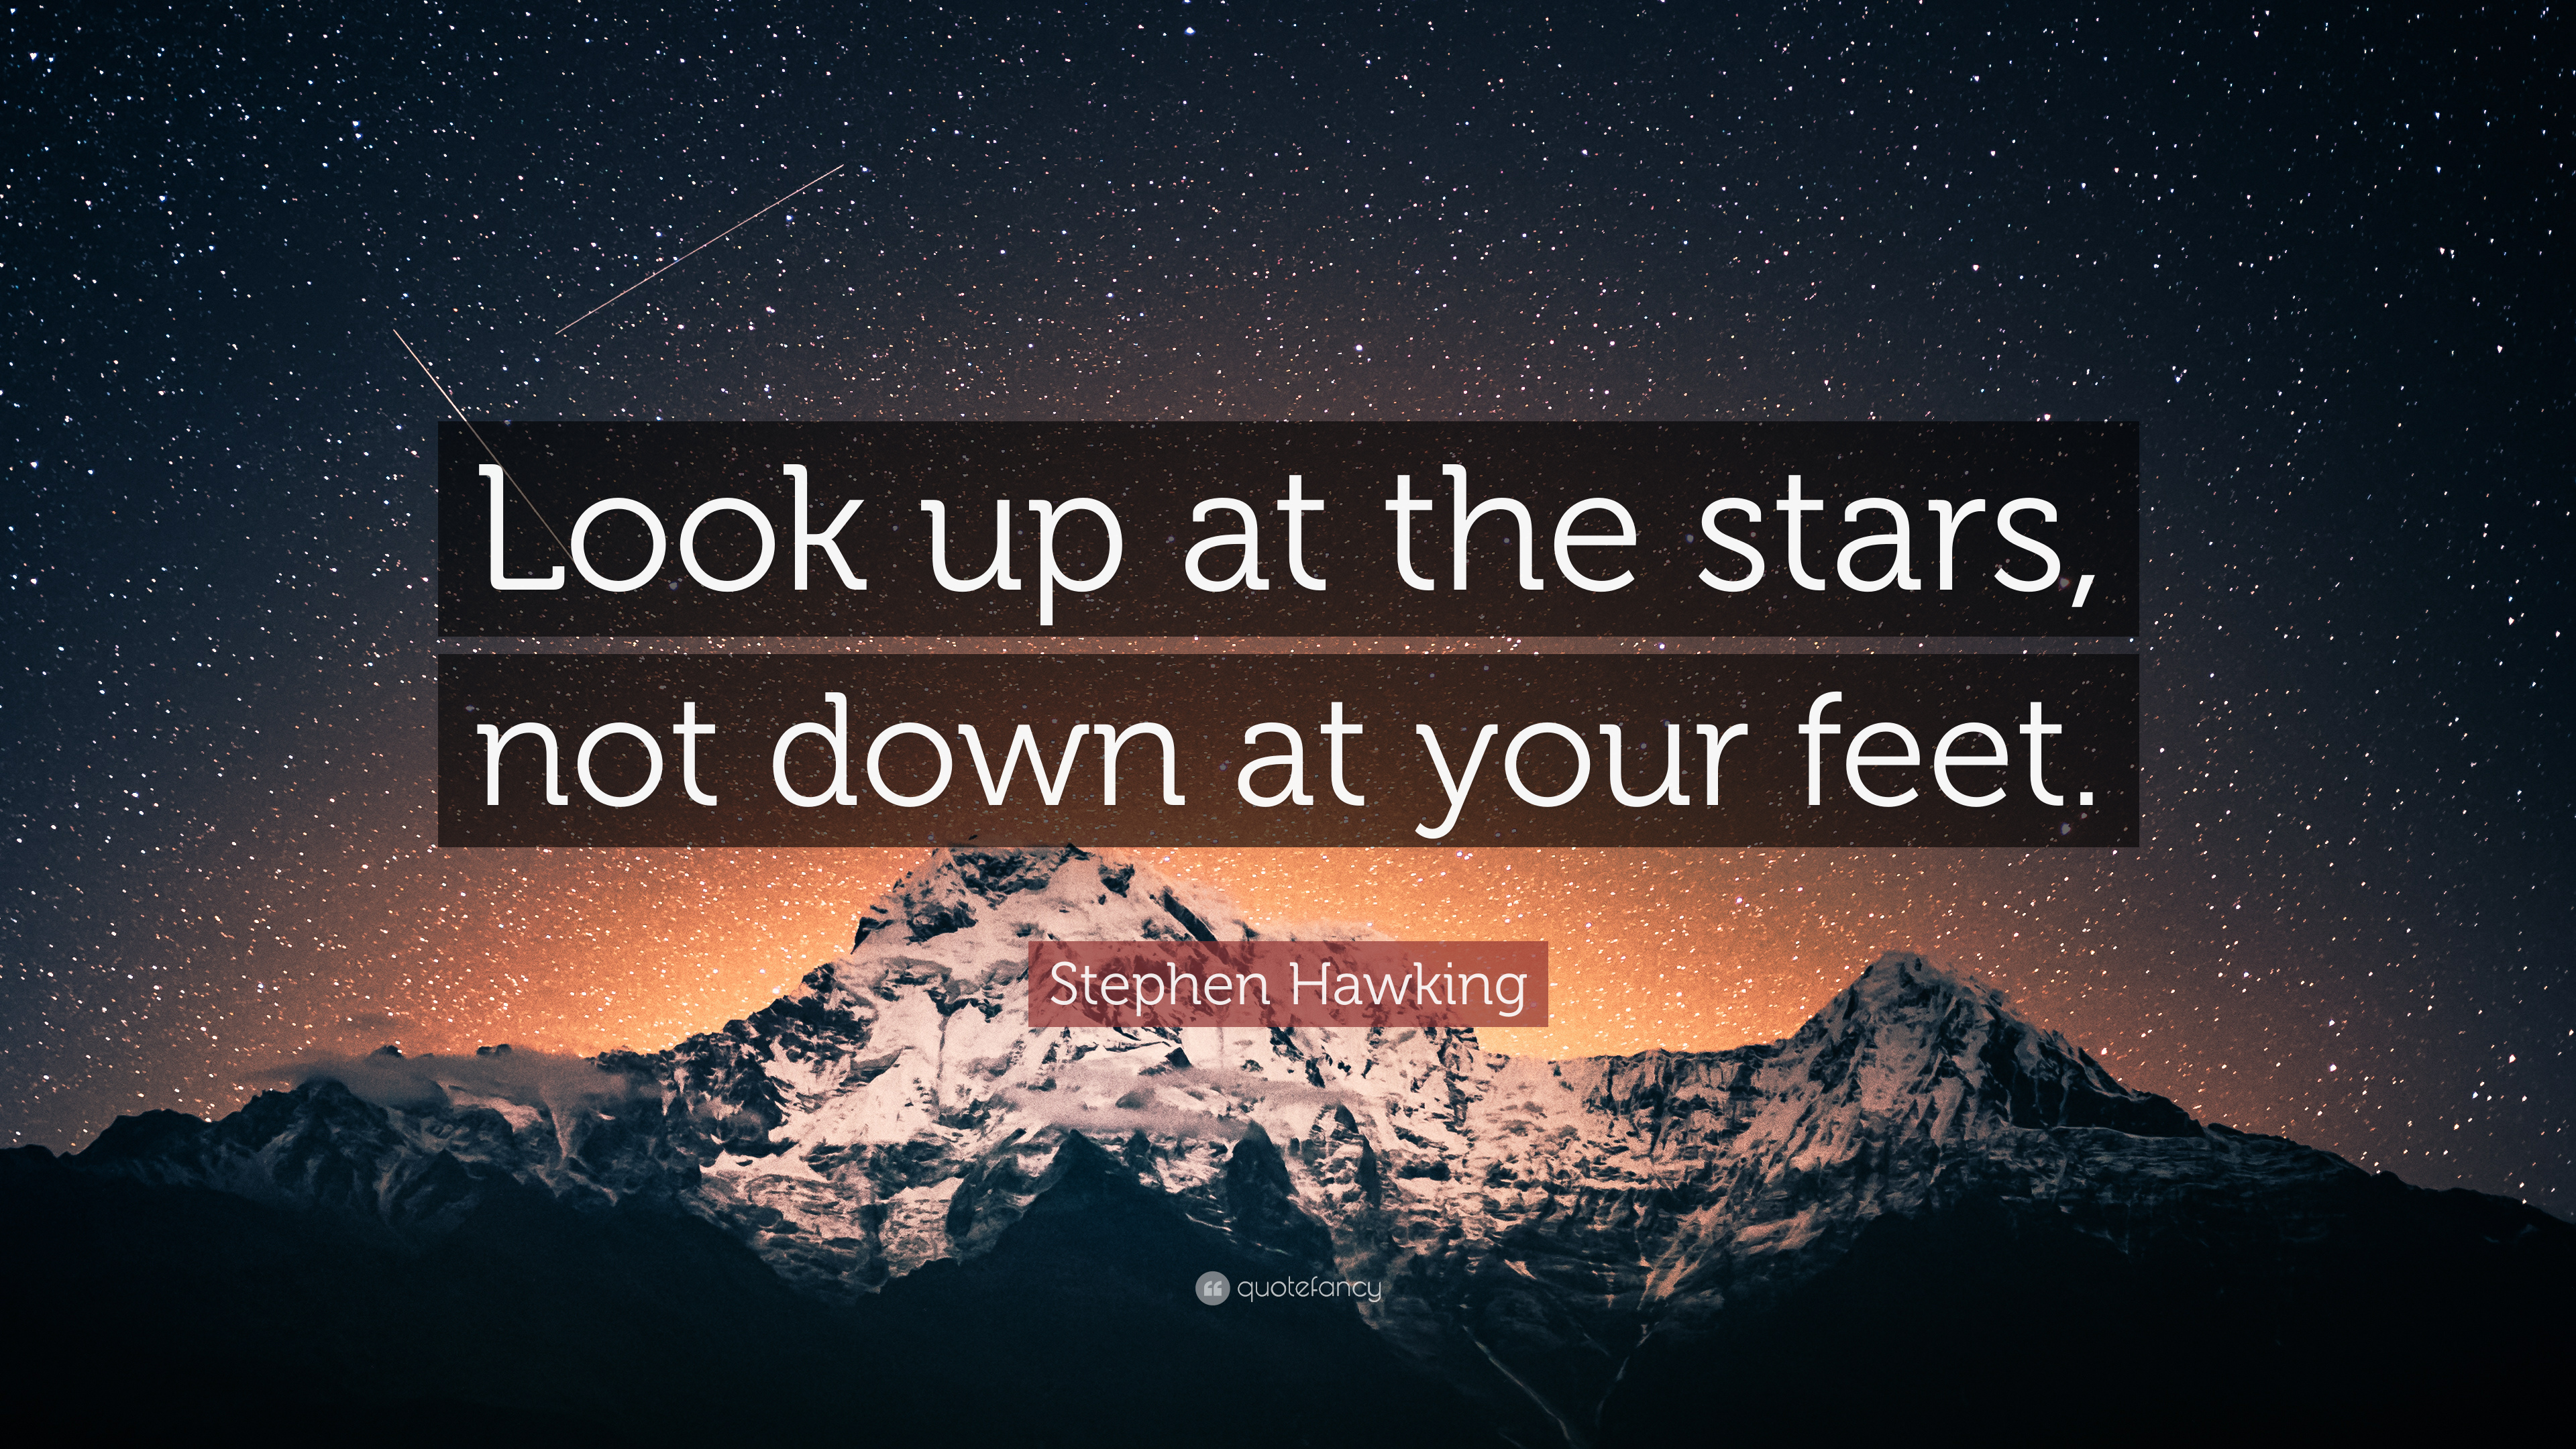 2021383-Stephen-Hawking-Quote-Look-up-at-the-stars-not-down-at-your-feet.jpg